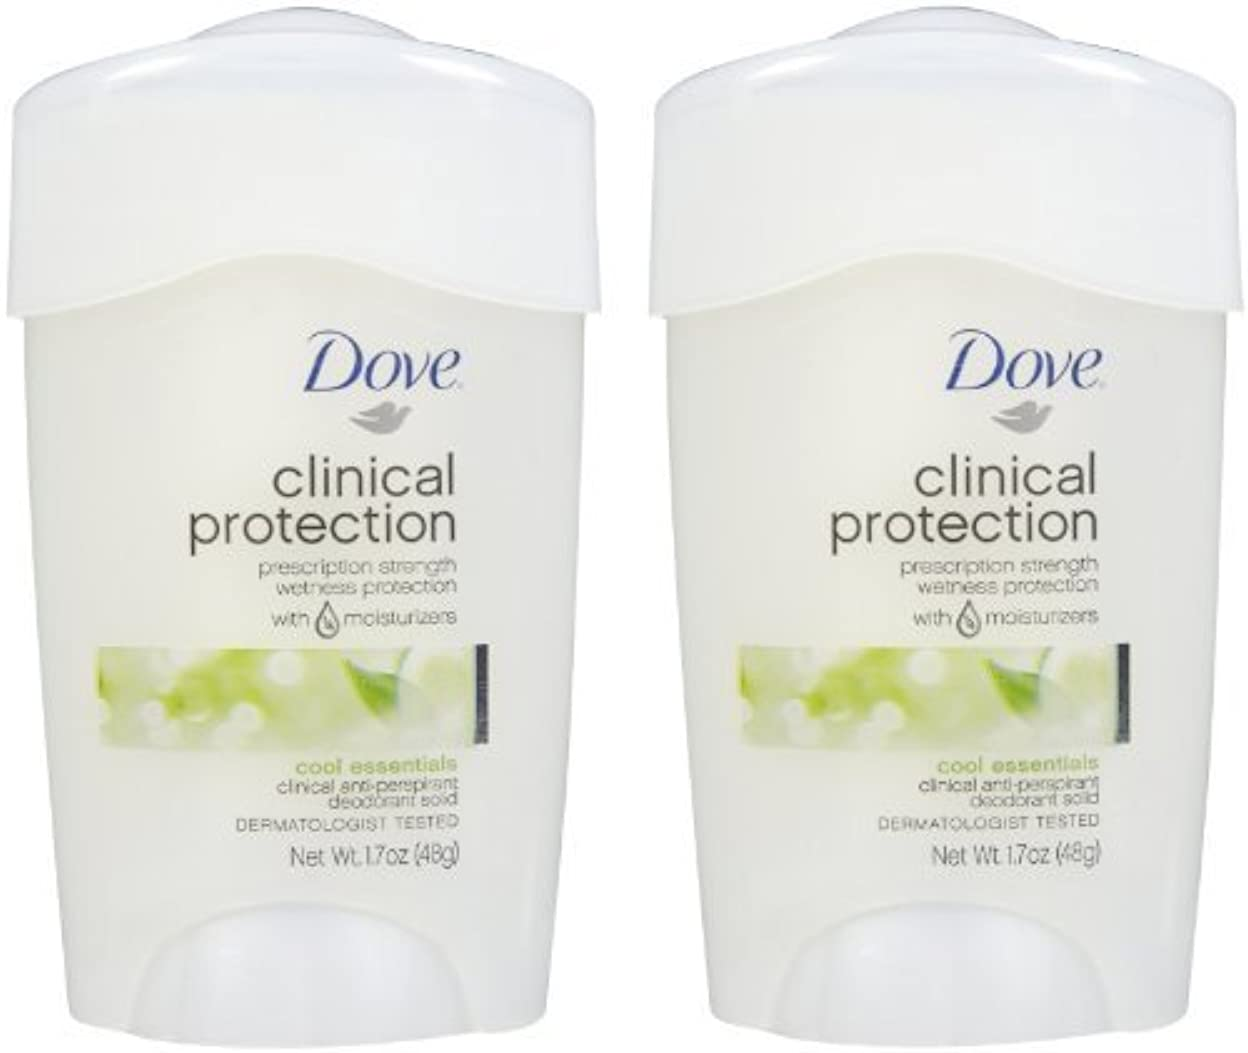 申し立てられたスカープスキームDove Clinical Protection Antiperspirant & Deodorant, Cool Essentials - 1.7 oz - 2 pk by Unilever [並行輸入品]